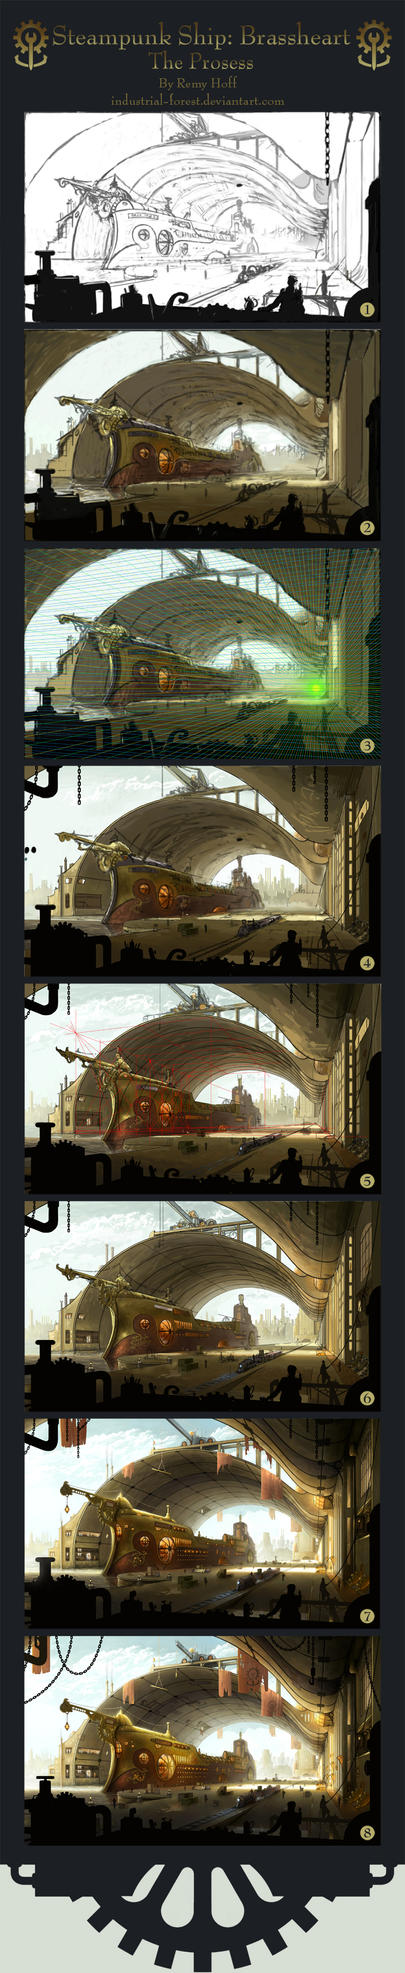 Process of Steampunk Ship: BH by Roseum